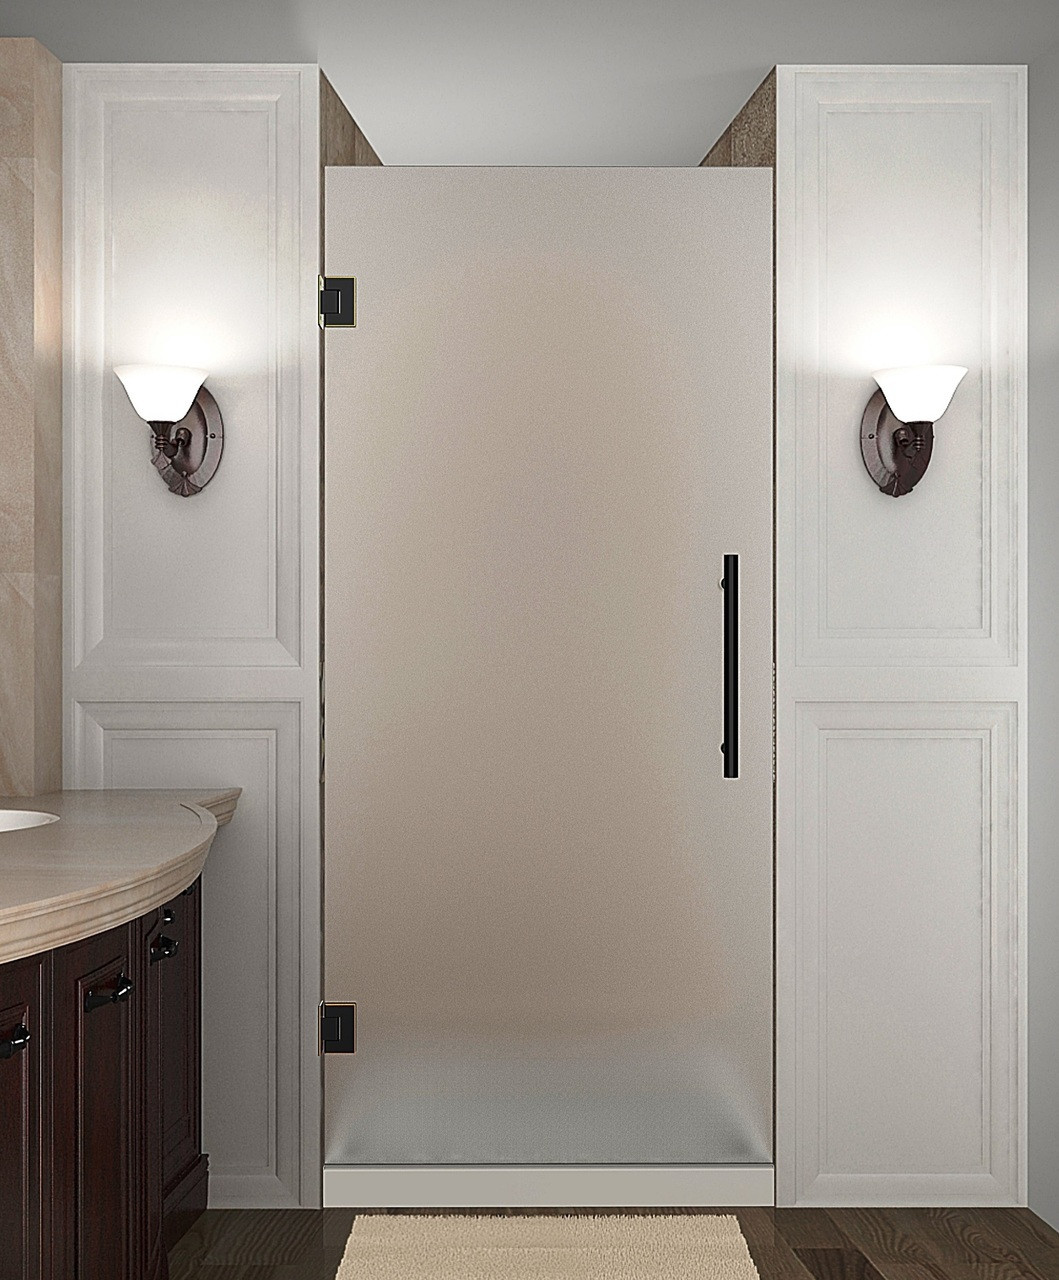 Aston SDR995F-ORB-24-10 Cascadia 24 In x 72 In Completely Frameless Frosted Glass Shower Door In Oil Rubbed Bronze